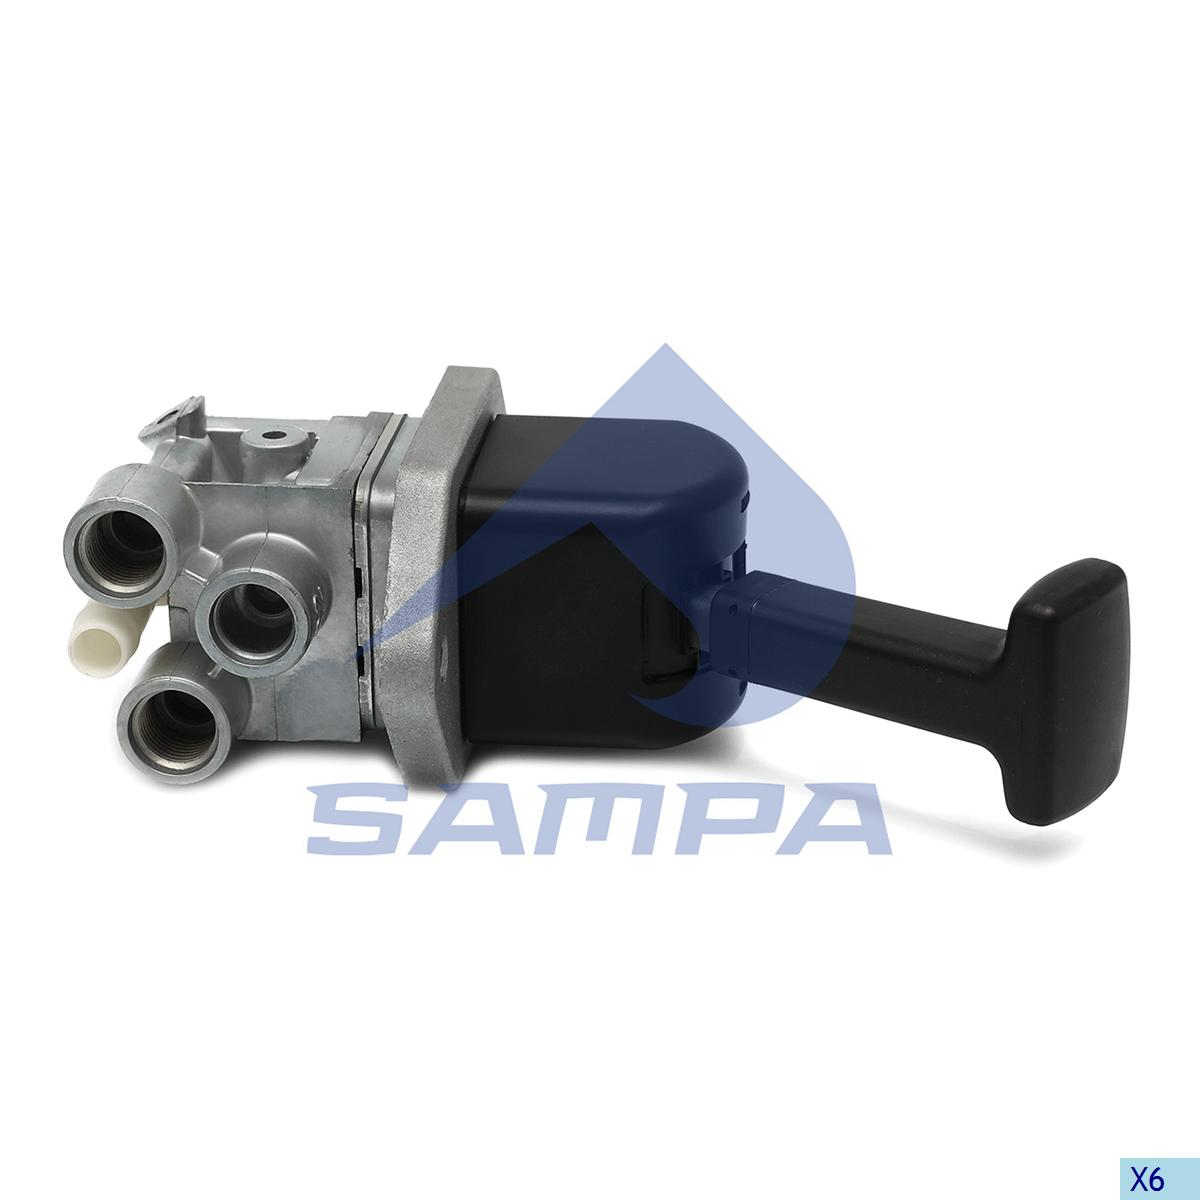 Hand Brake Valve, Mercedes, Compressed Air System